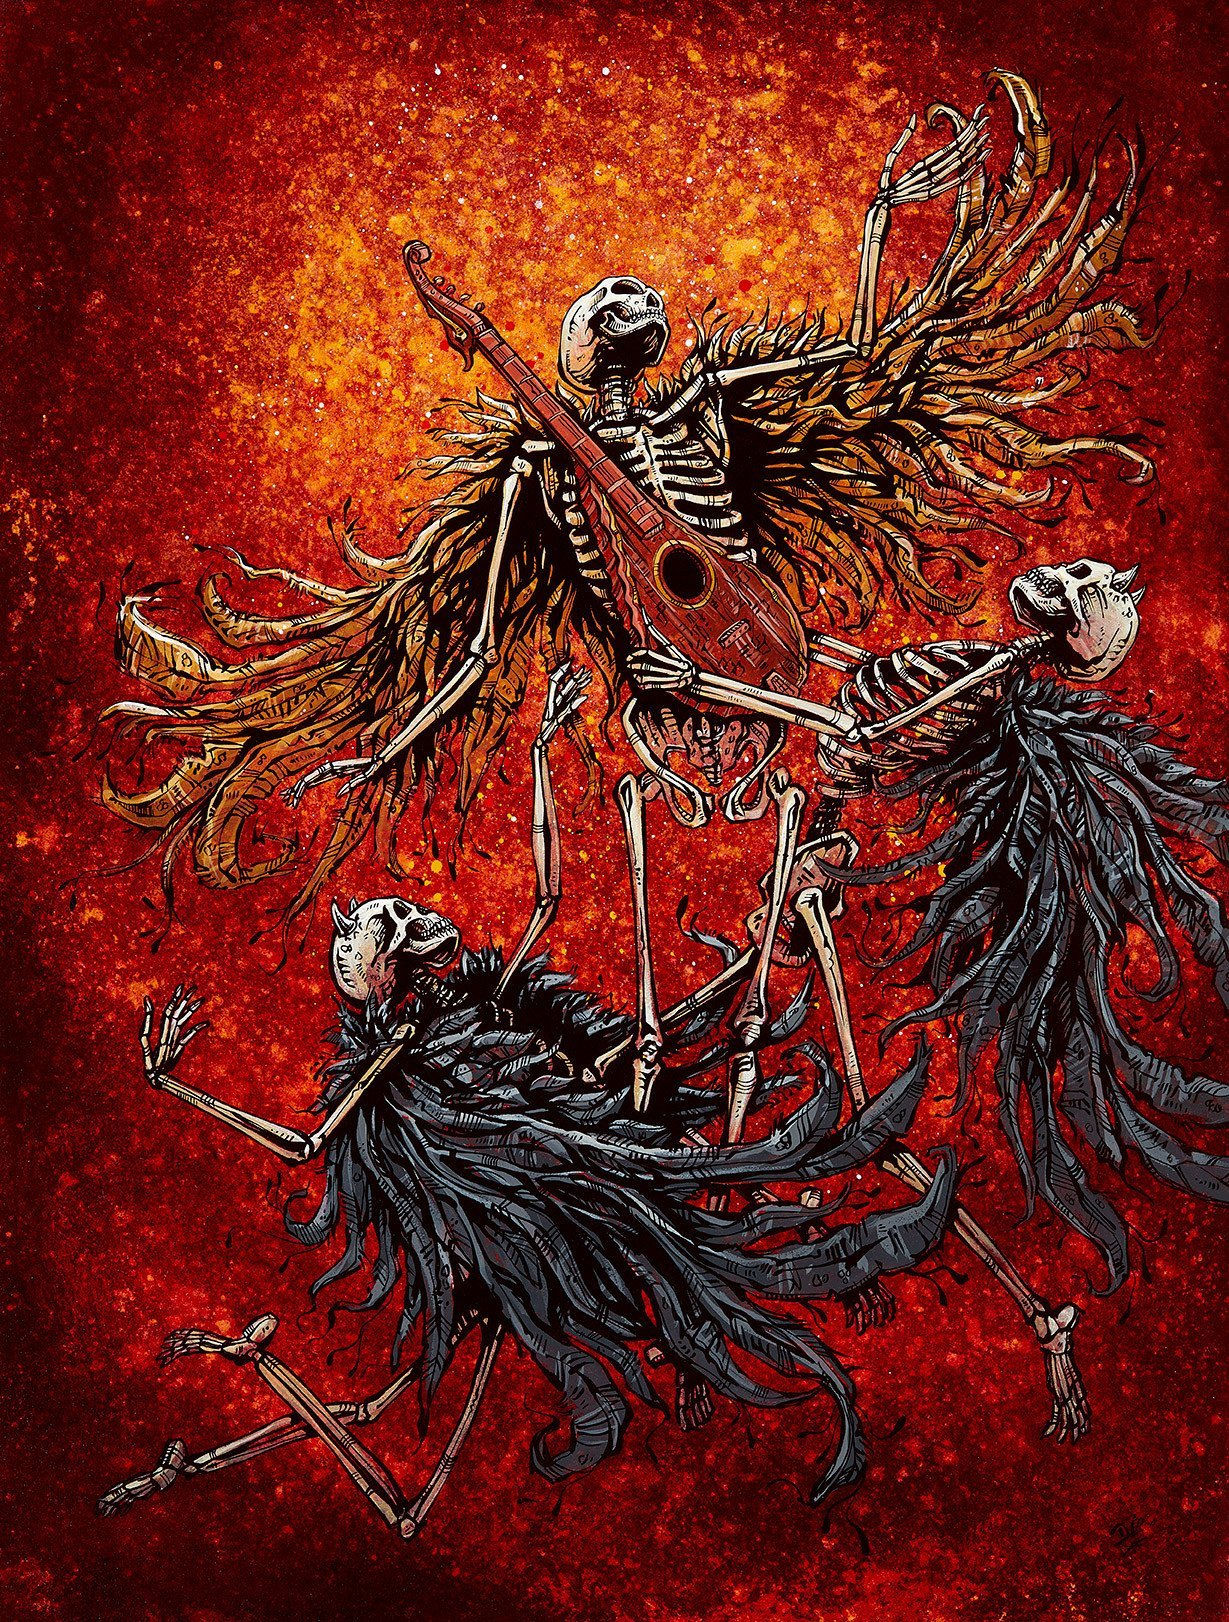 Ascension by Day of the Dead Artist David Lozeau, Day of the Dead Art, Dia de los Muertos Art, Dia de los Muertos Artist